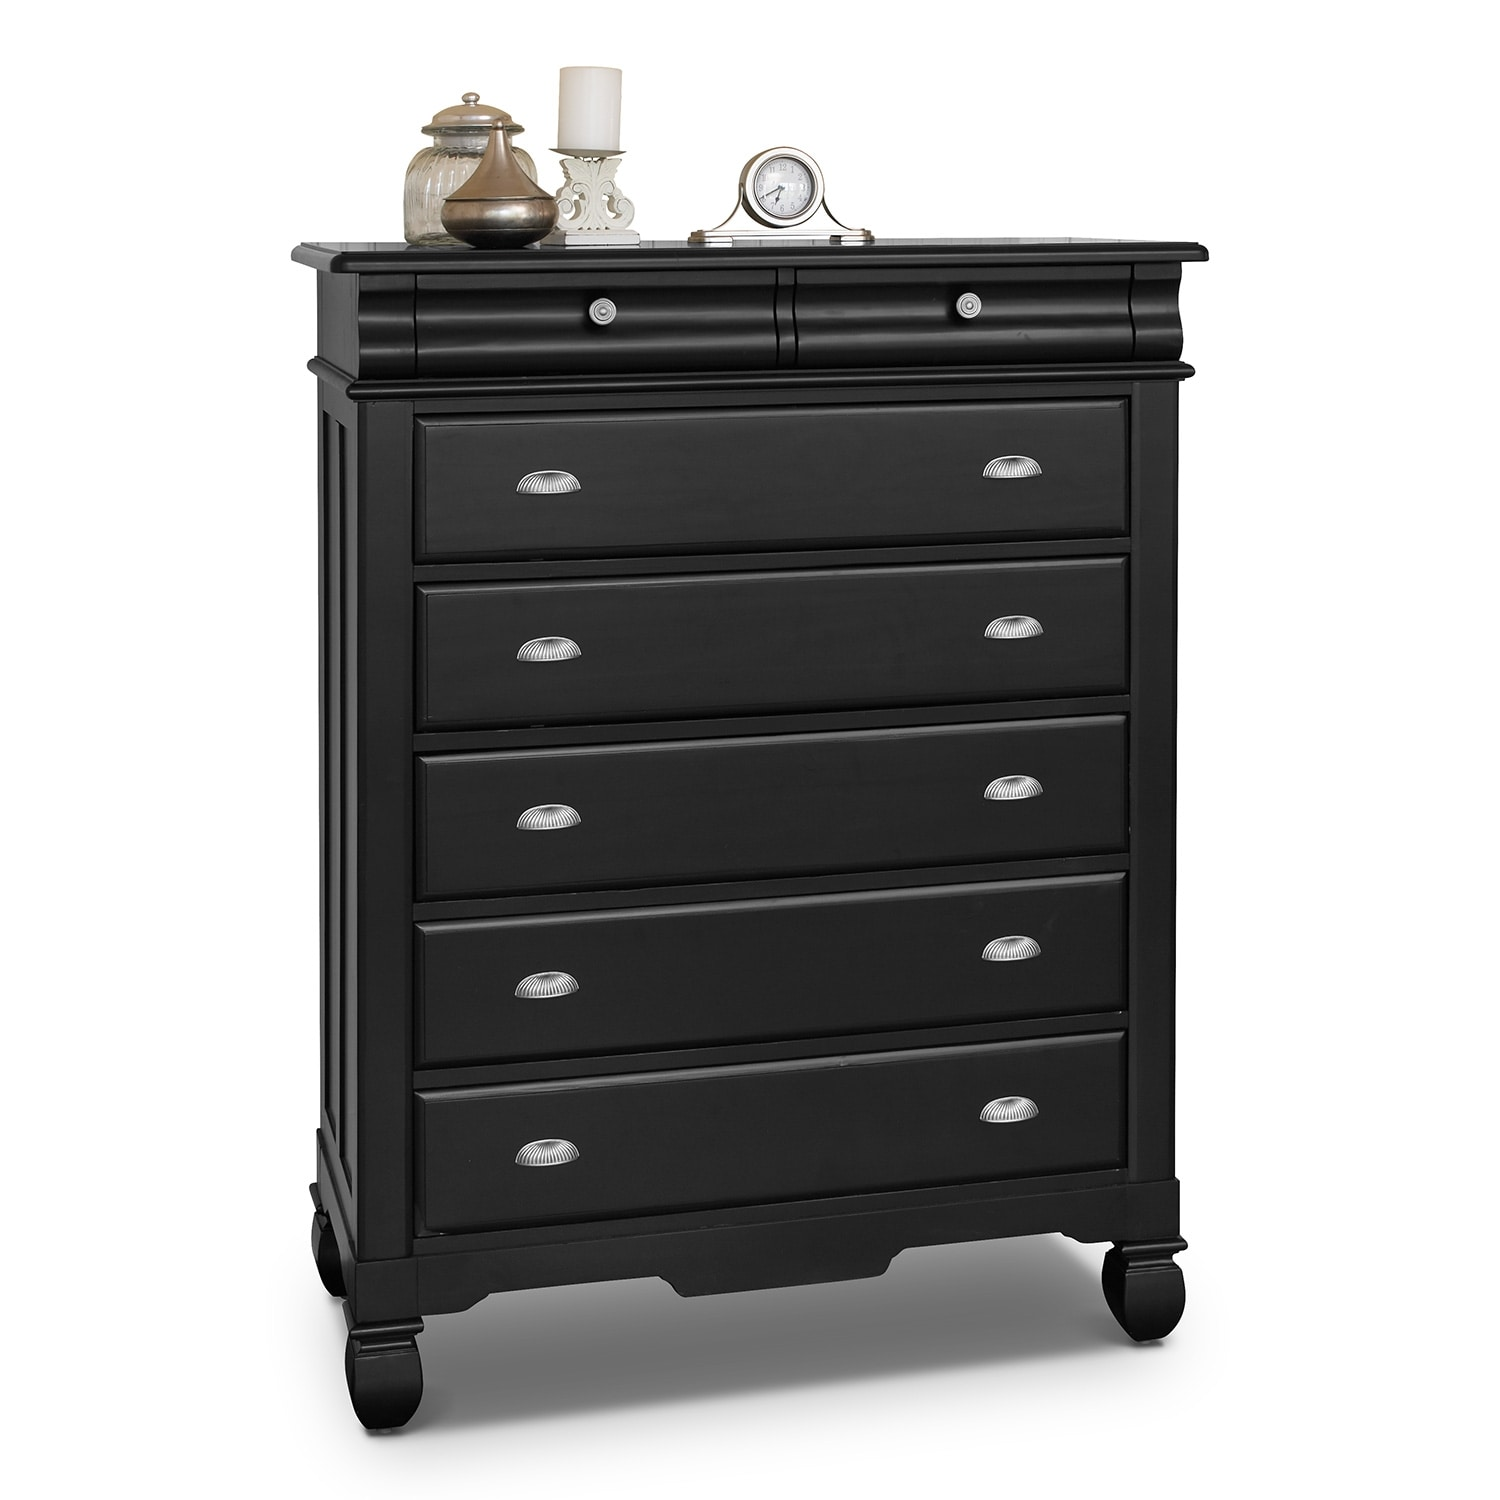 Kids Furniture - Plantation Cove Chest - Black